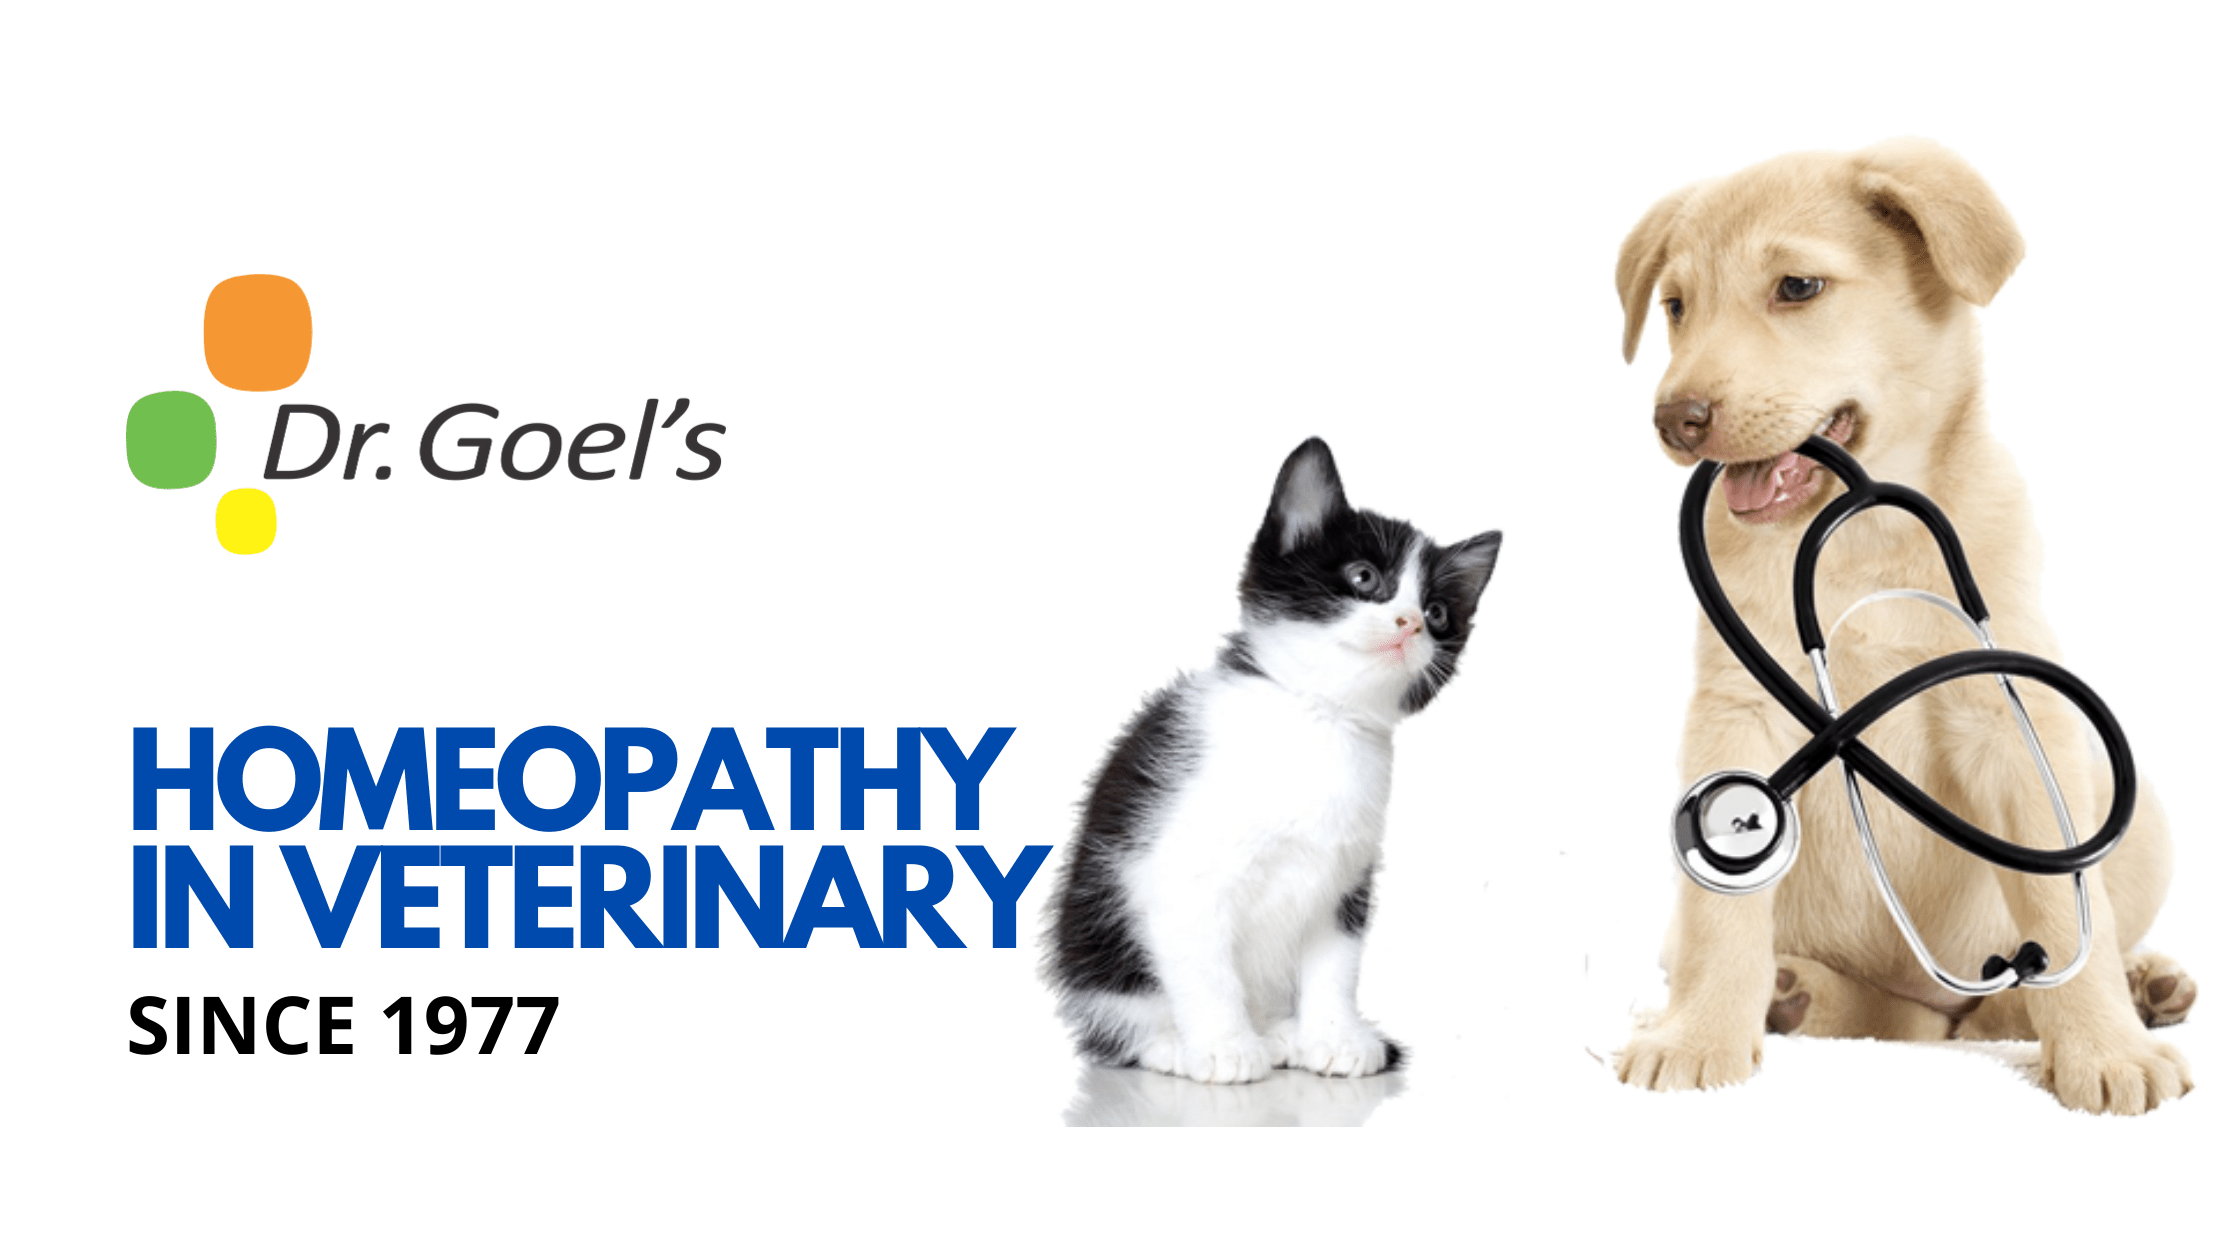 Homeopathy in Veterinary